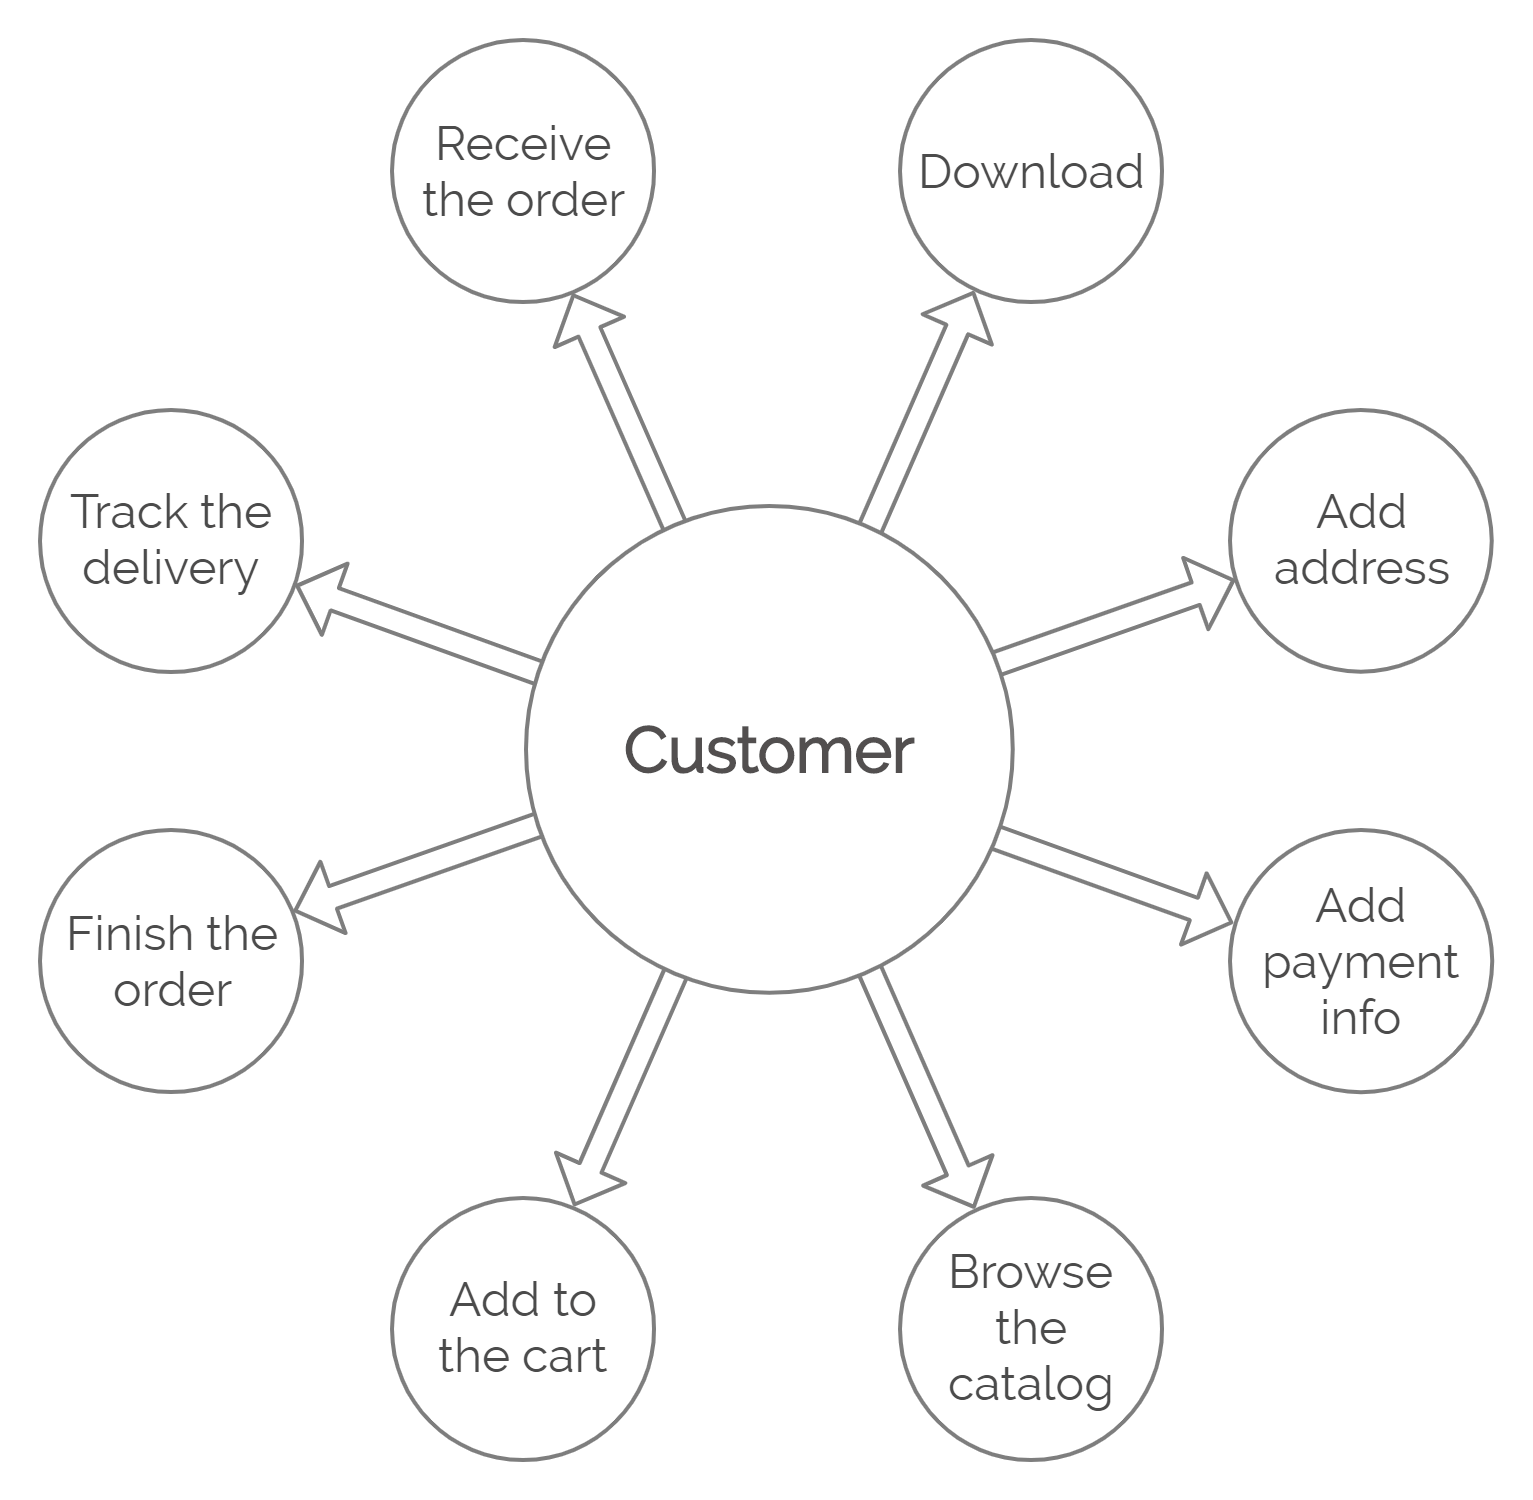 Customer's Actions